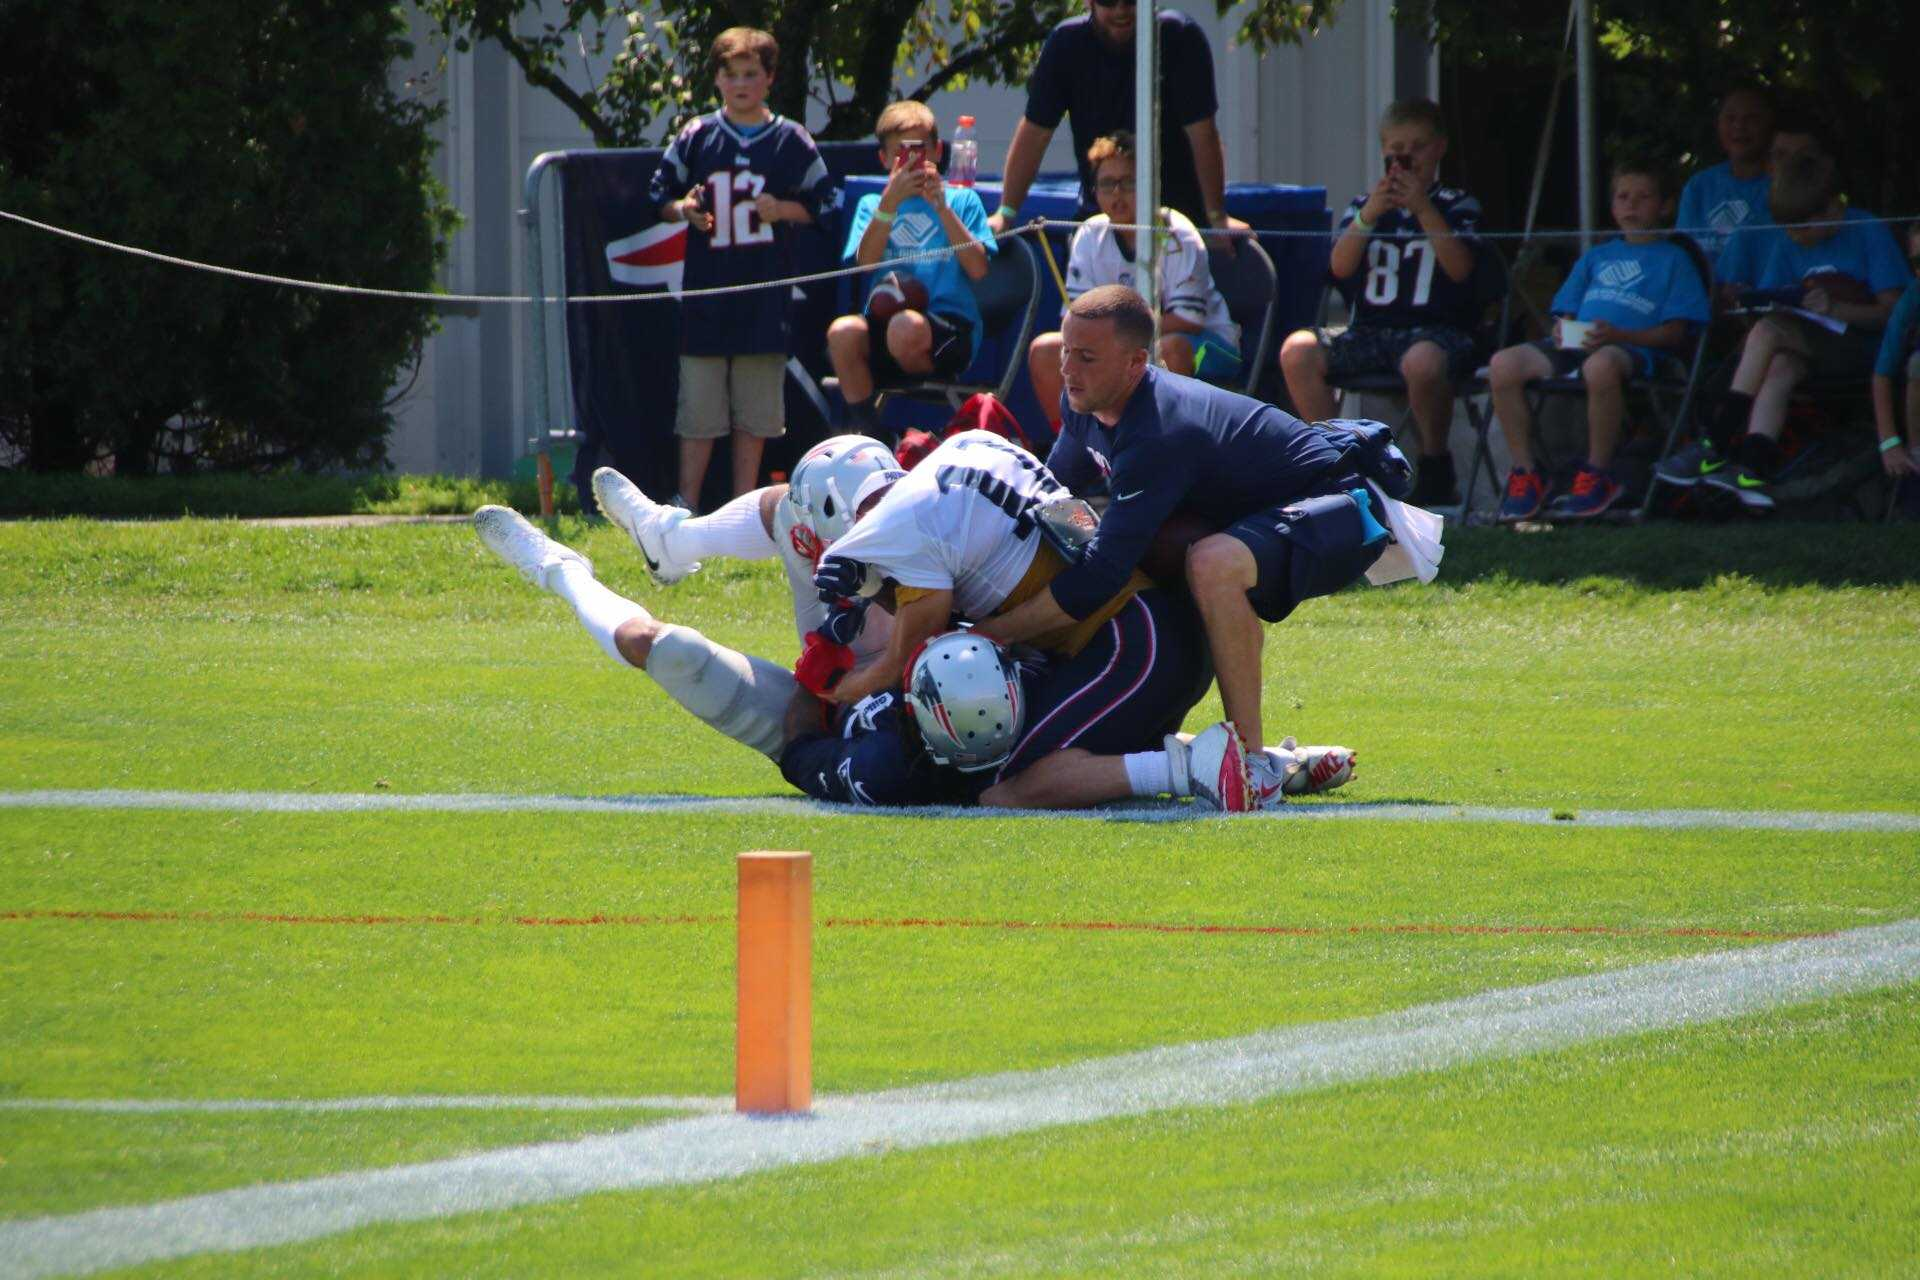 Patriots' Julian Edelman, Stephon Gilmore booted after camp scuffle